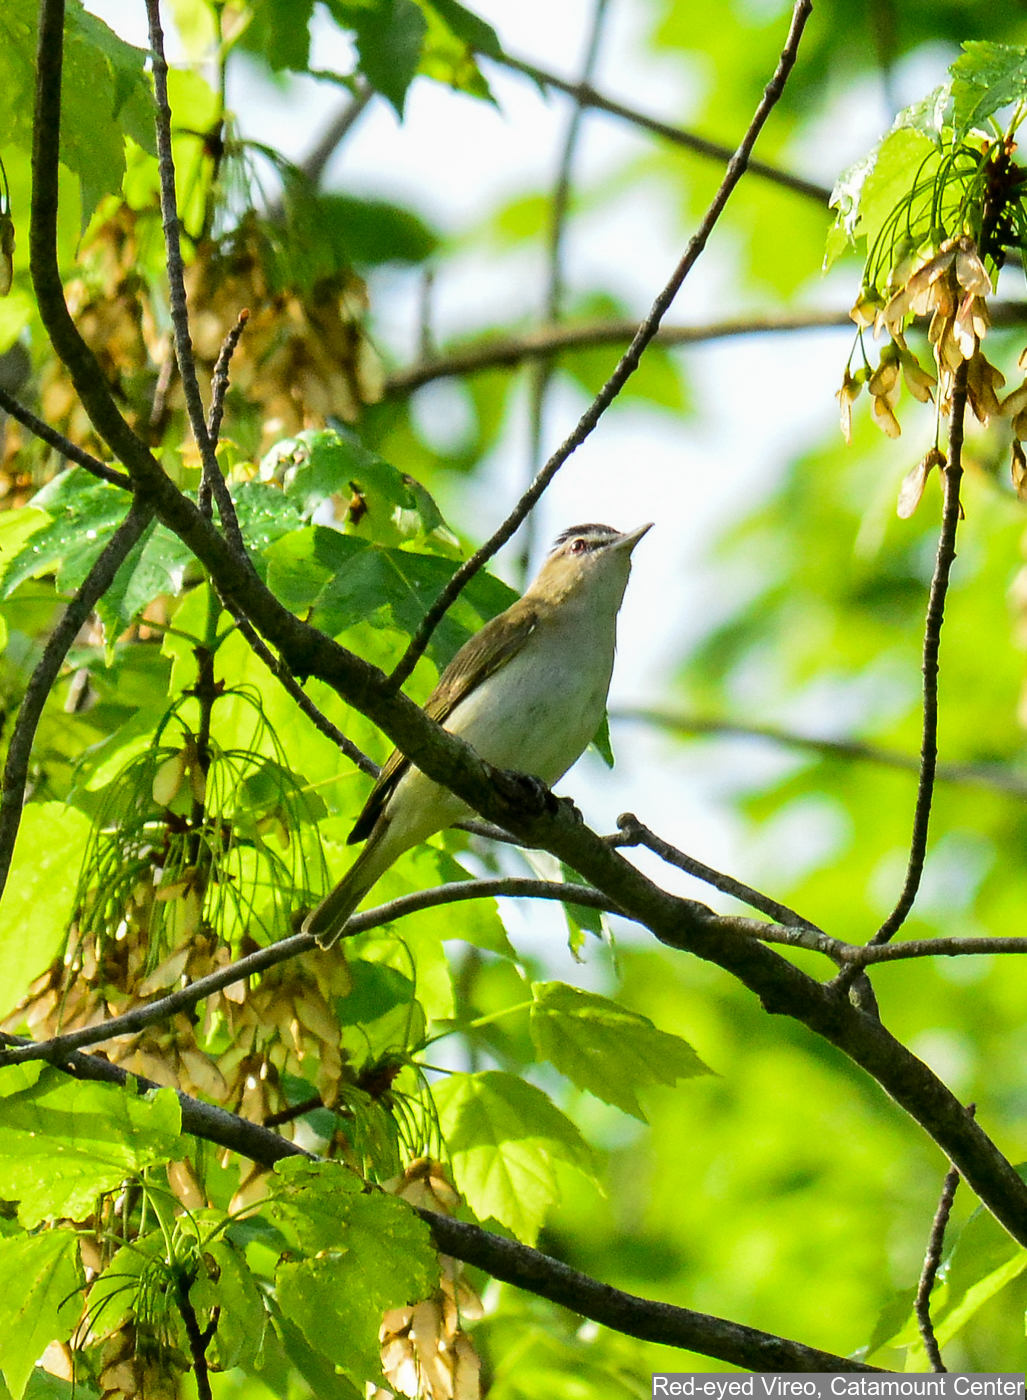 Red-eyed Vireo Photo: Marc Faucher